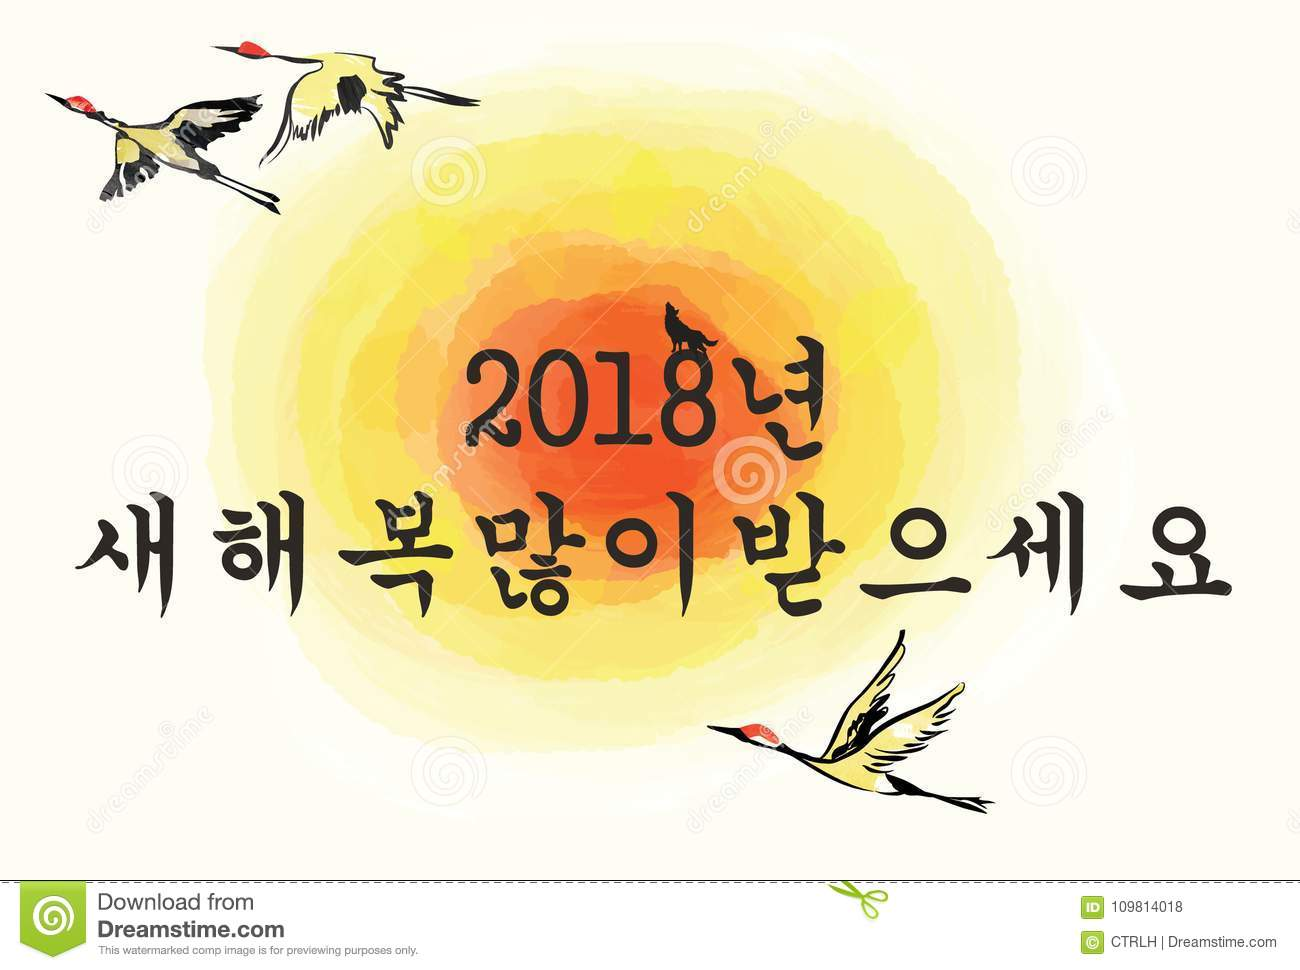 Vintage greeting card for the korean new year 2018 celebration traditional vintage greeting card for the korean new year of the dog 2018 celebration text translation happy new year 2018 m4hsunfo